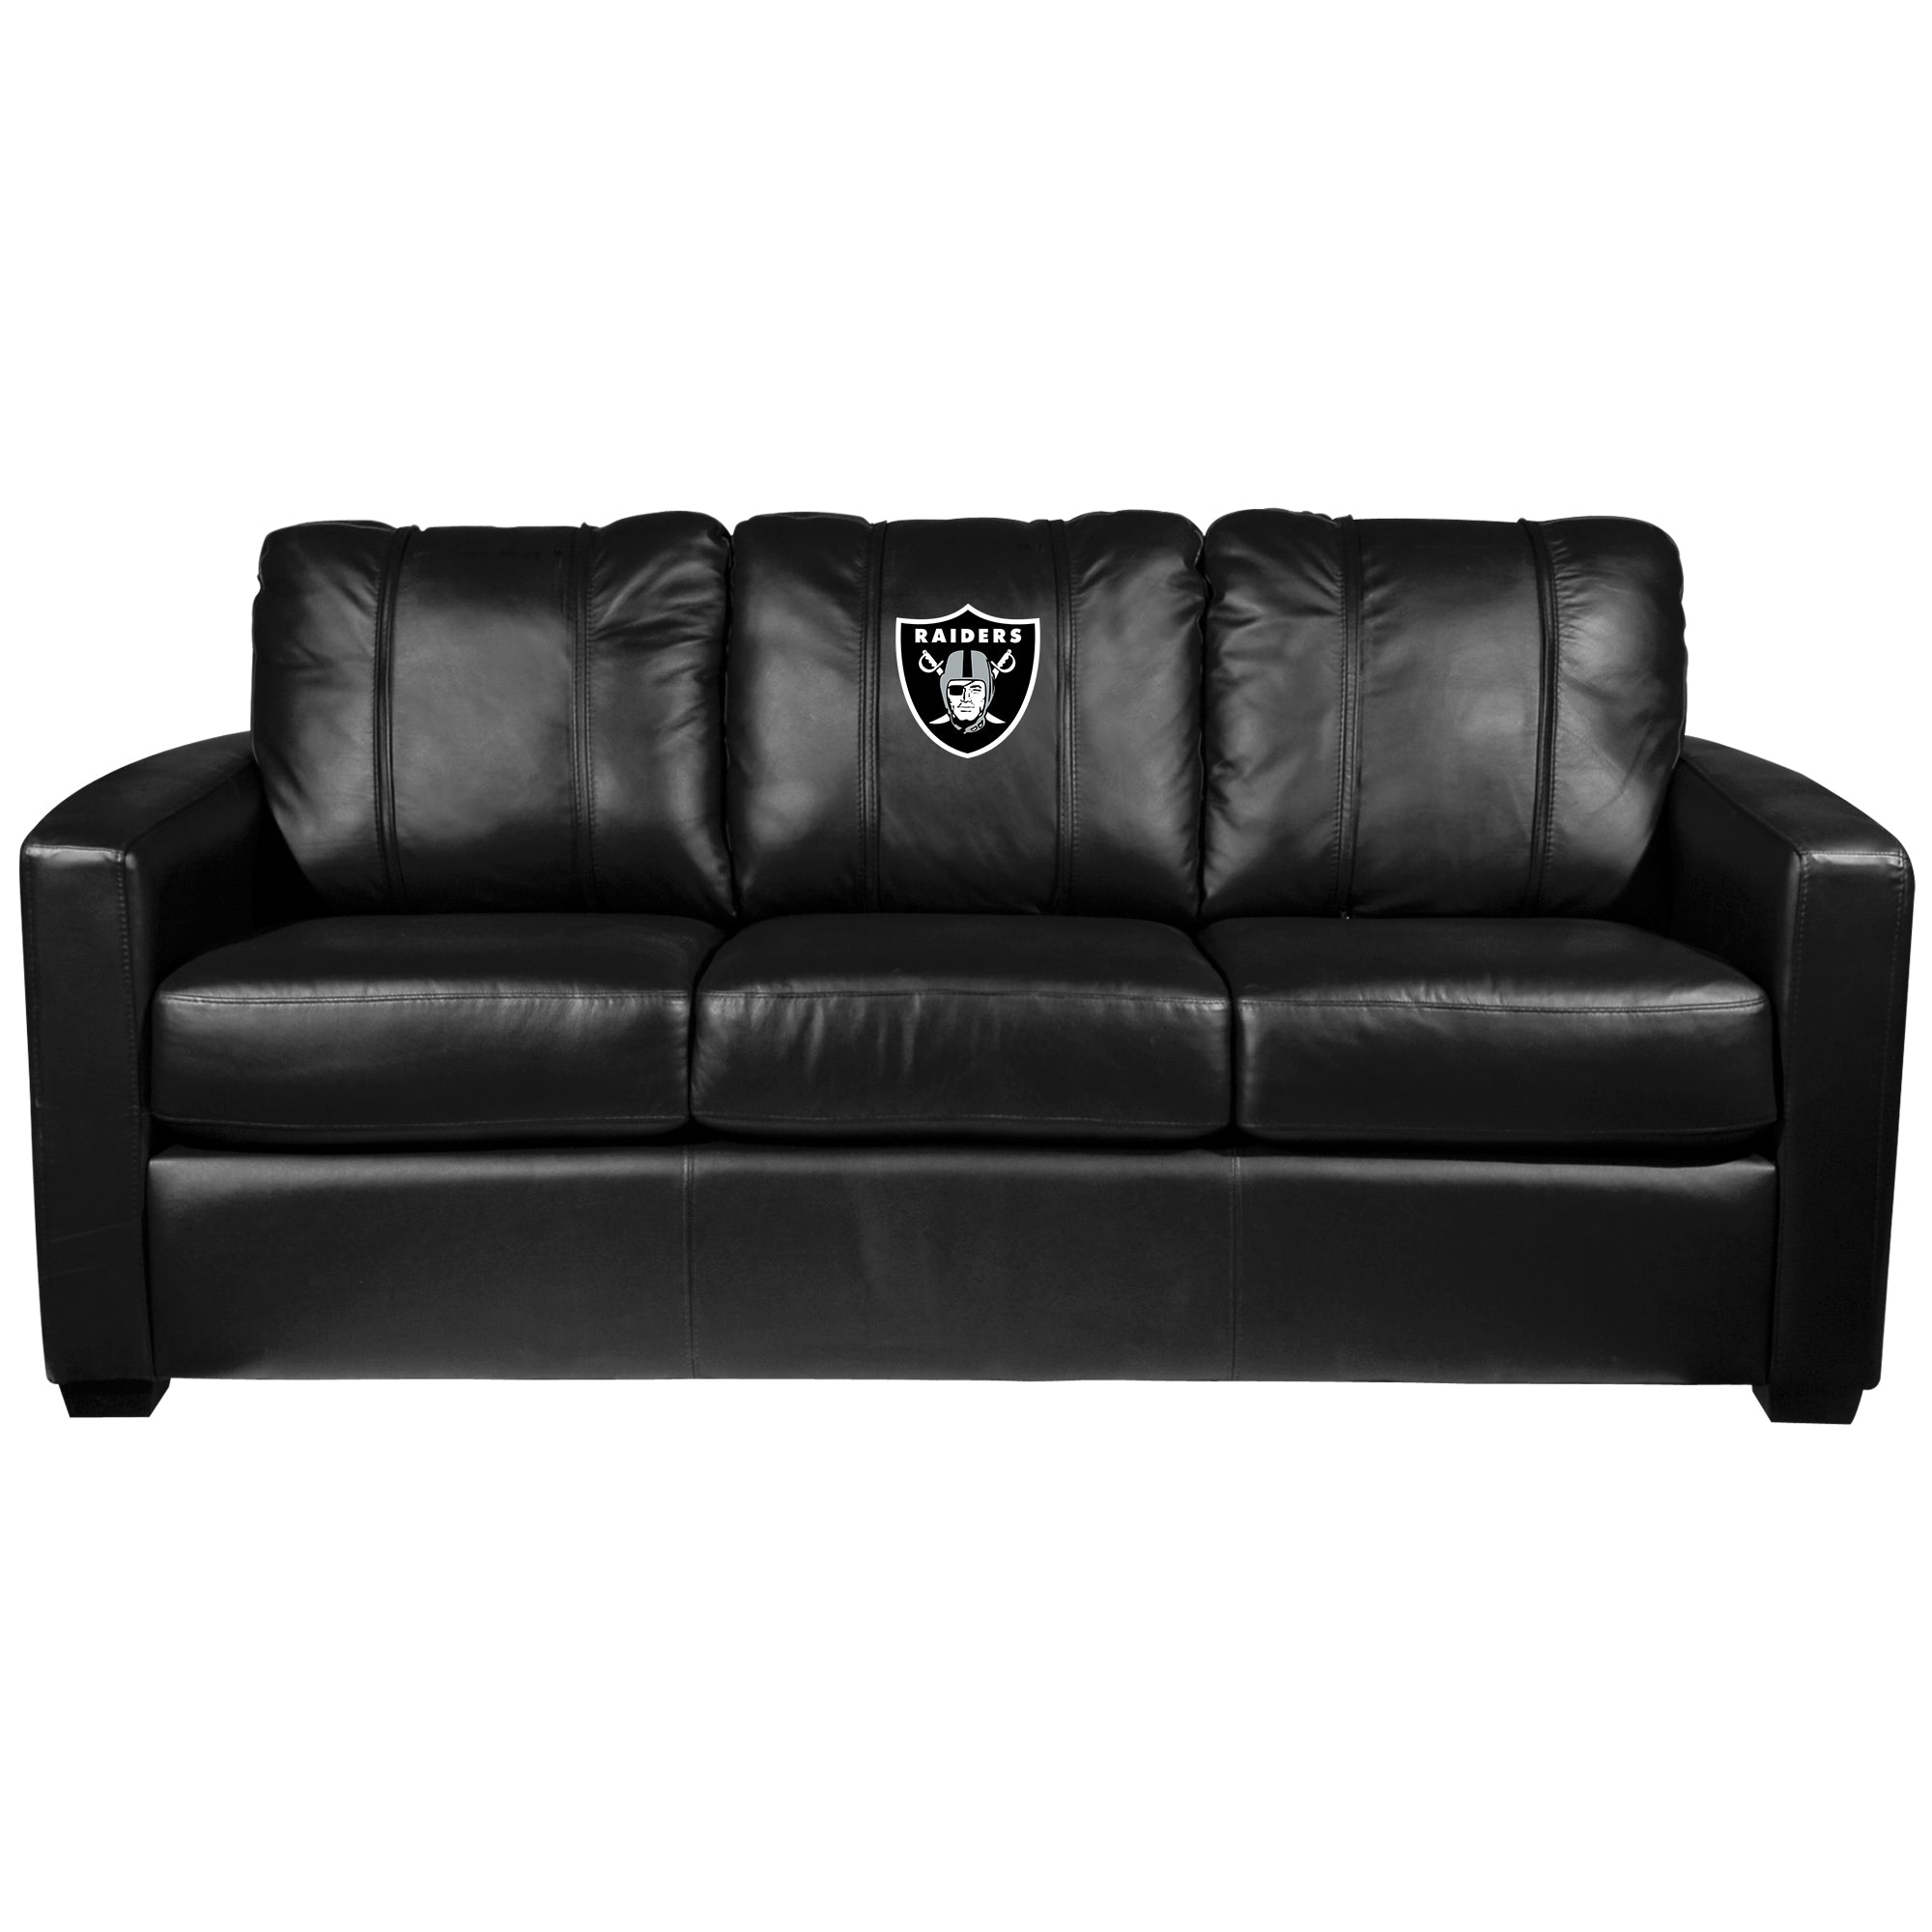 Silver Sofa with  Las Vegas Raiders Primary Logo